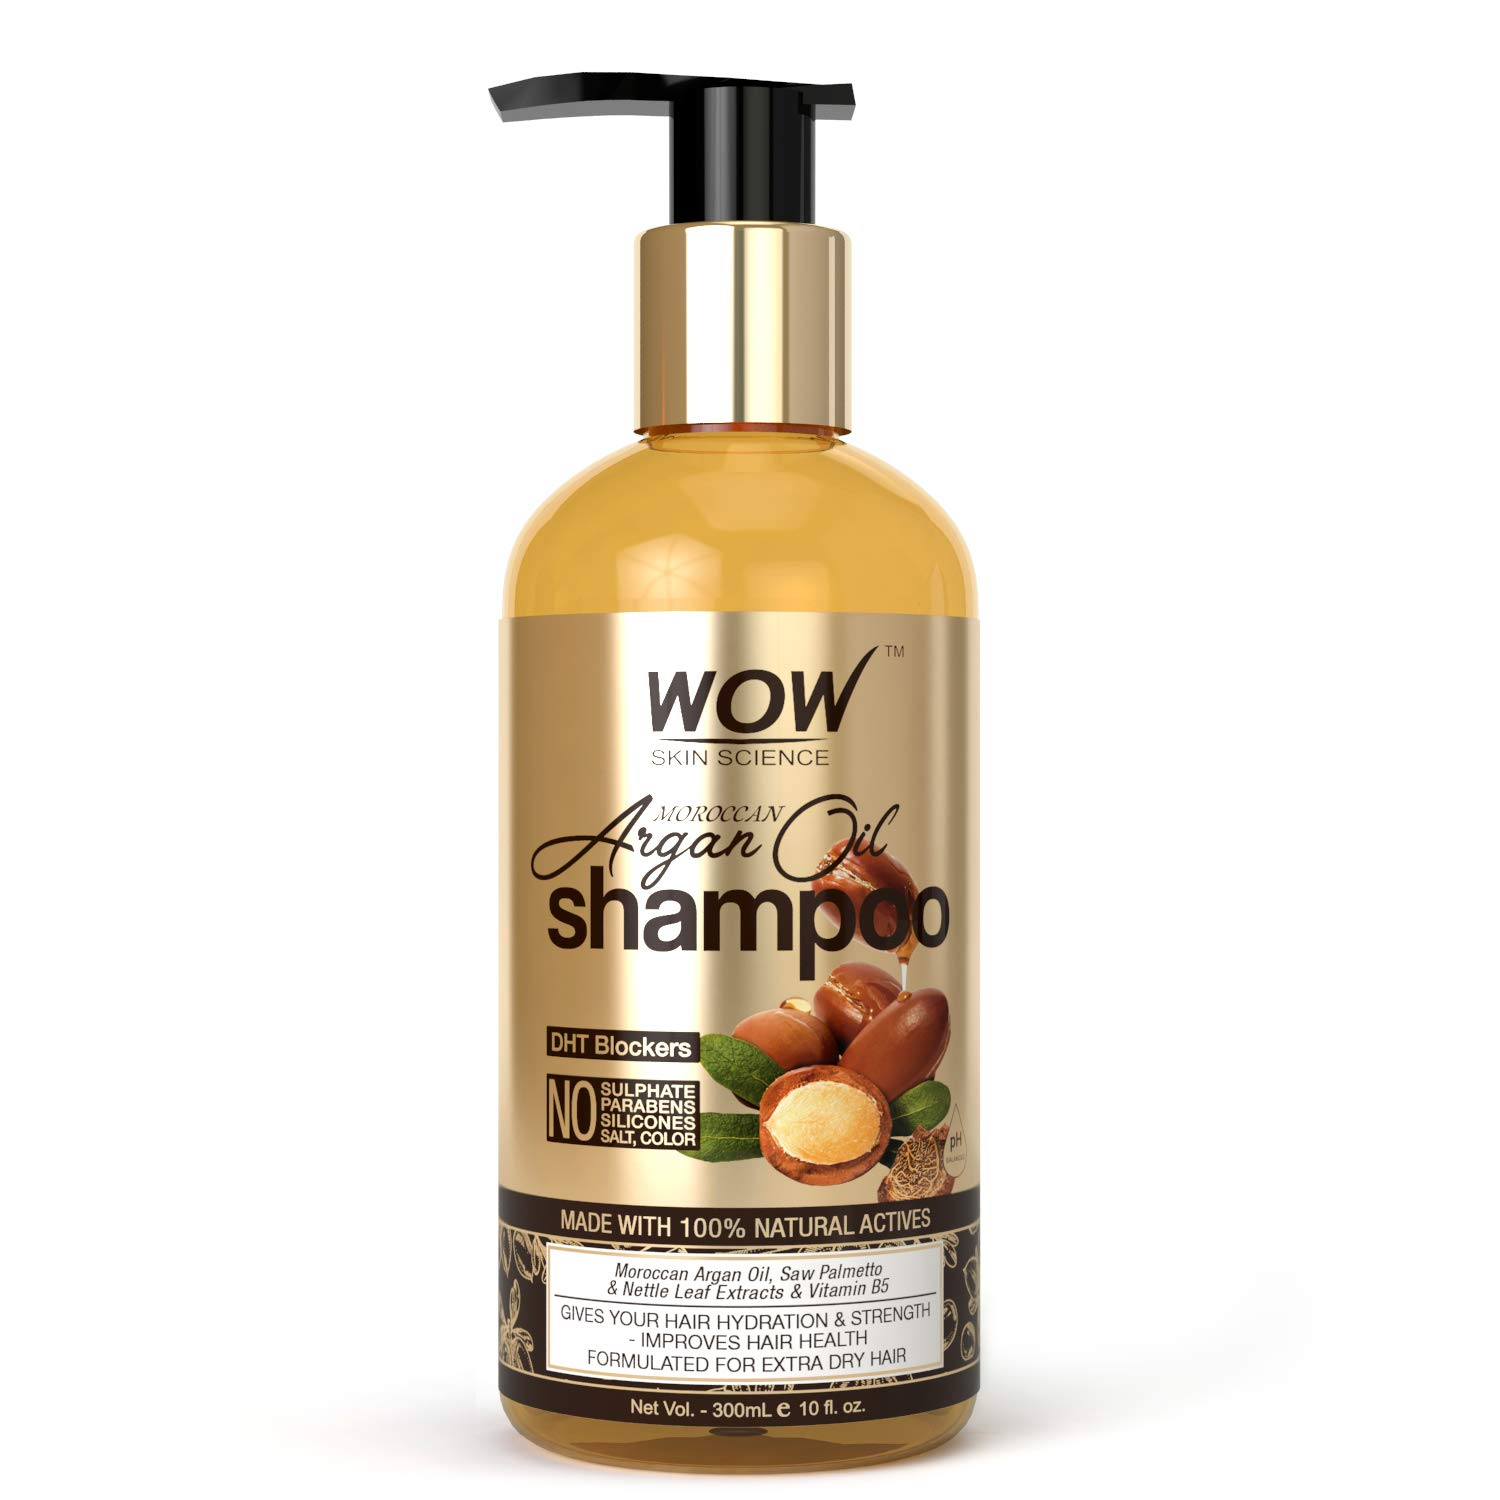 WOW Skin Science Moroccan Argan Oil Shampoo (with DHT